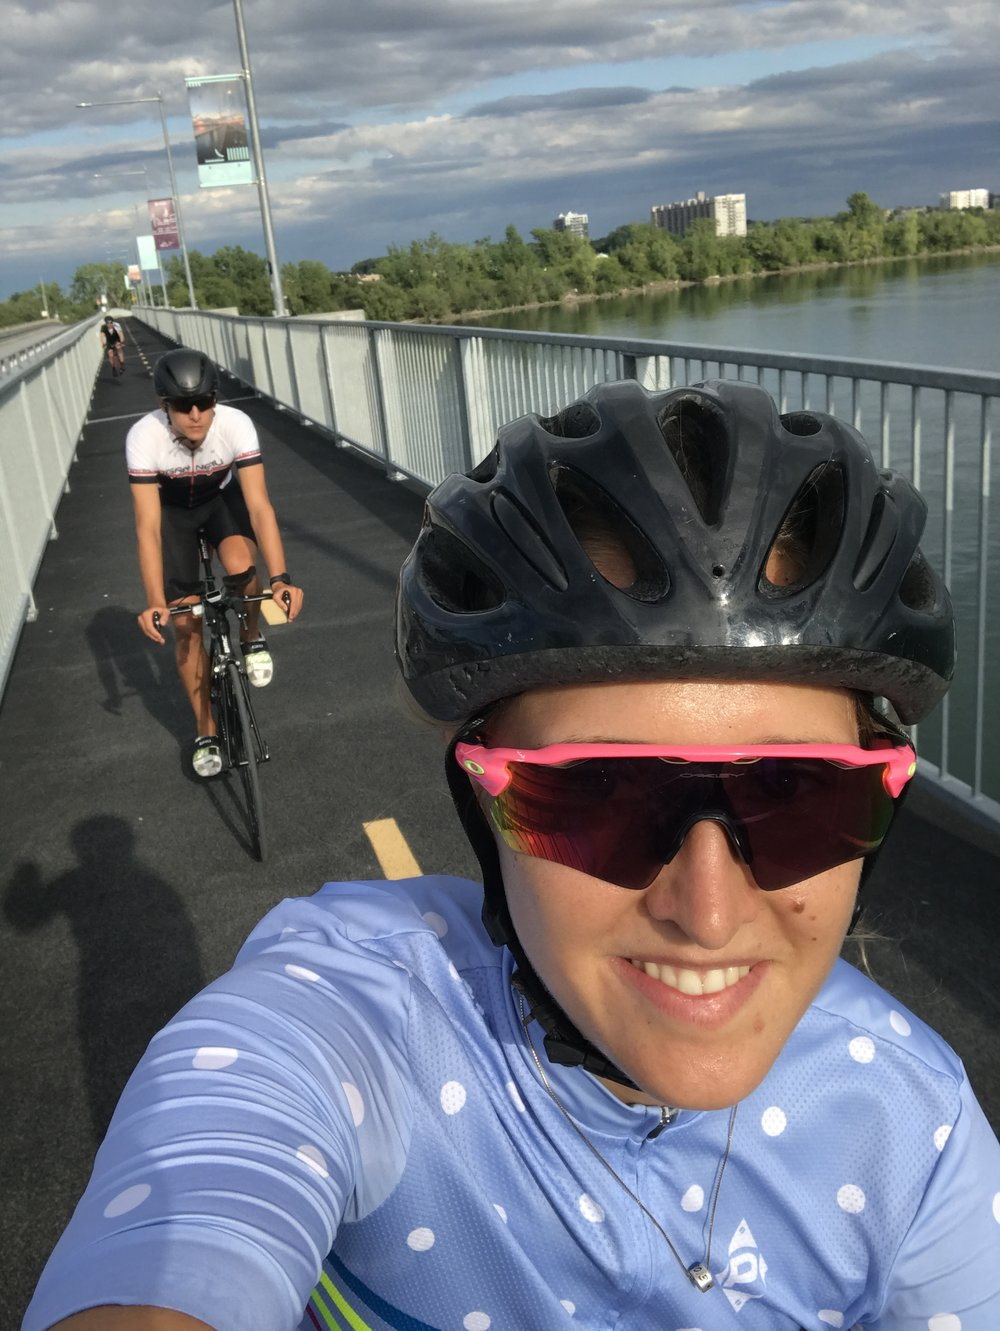 Great time riding with my brother in Montreal